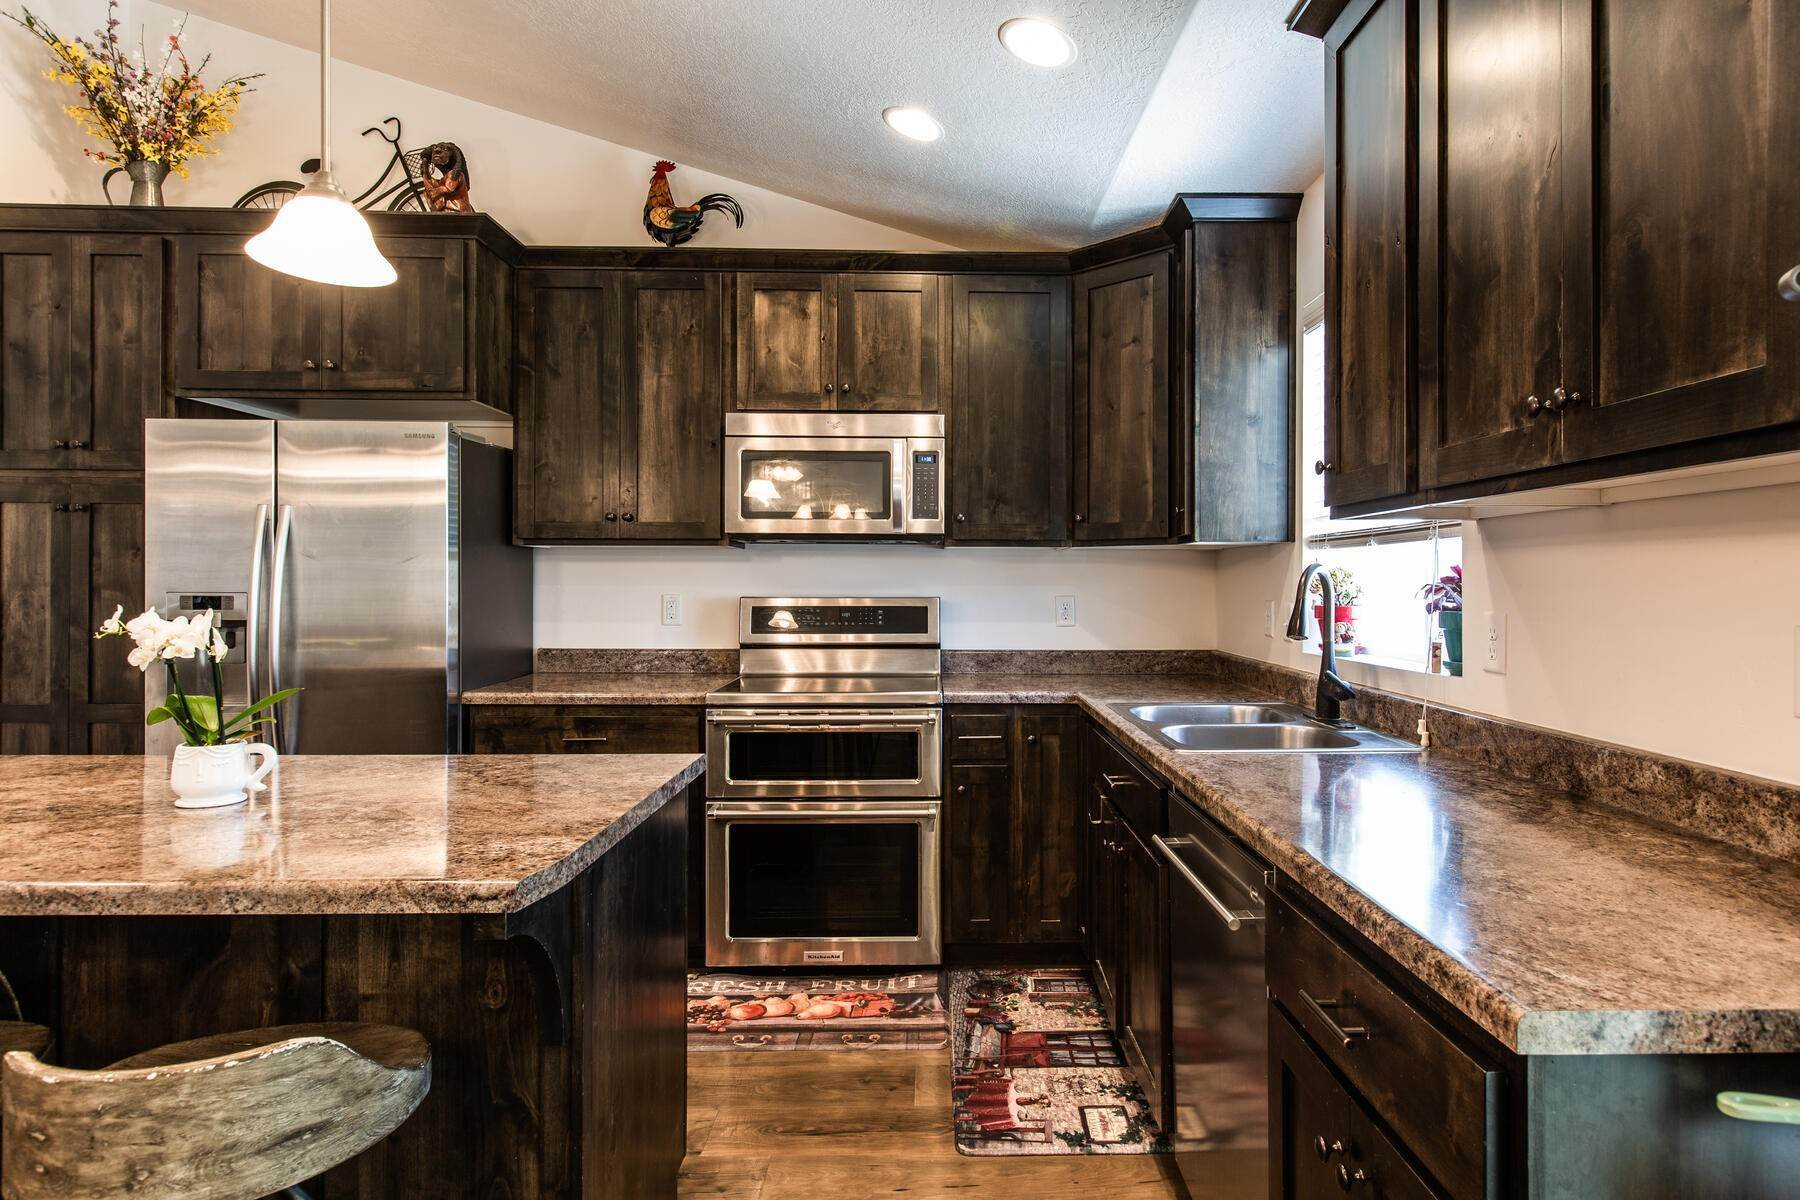 11. Single Family Homes for Sale at Beautiful Home in Quiet Neighborhood. 676 South 930 East Heber City, Utah 84032 United States